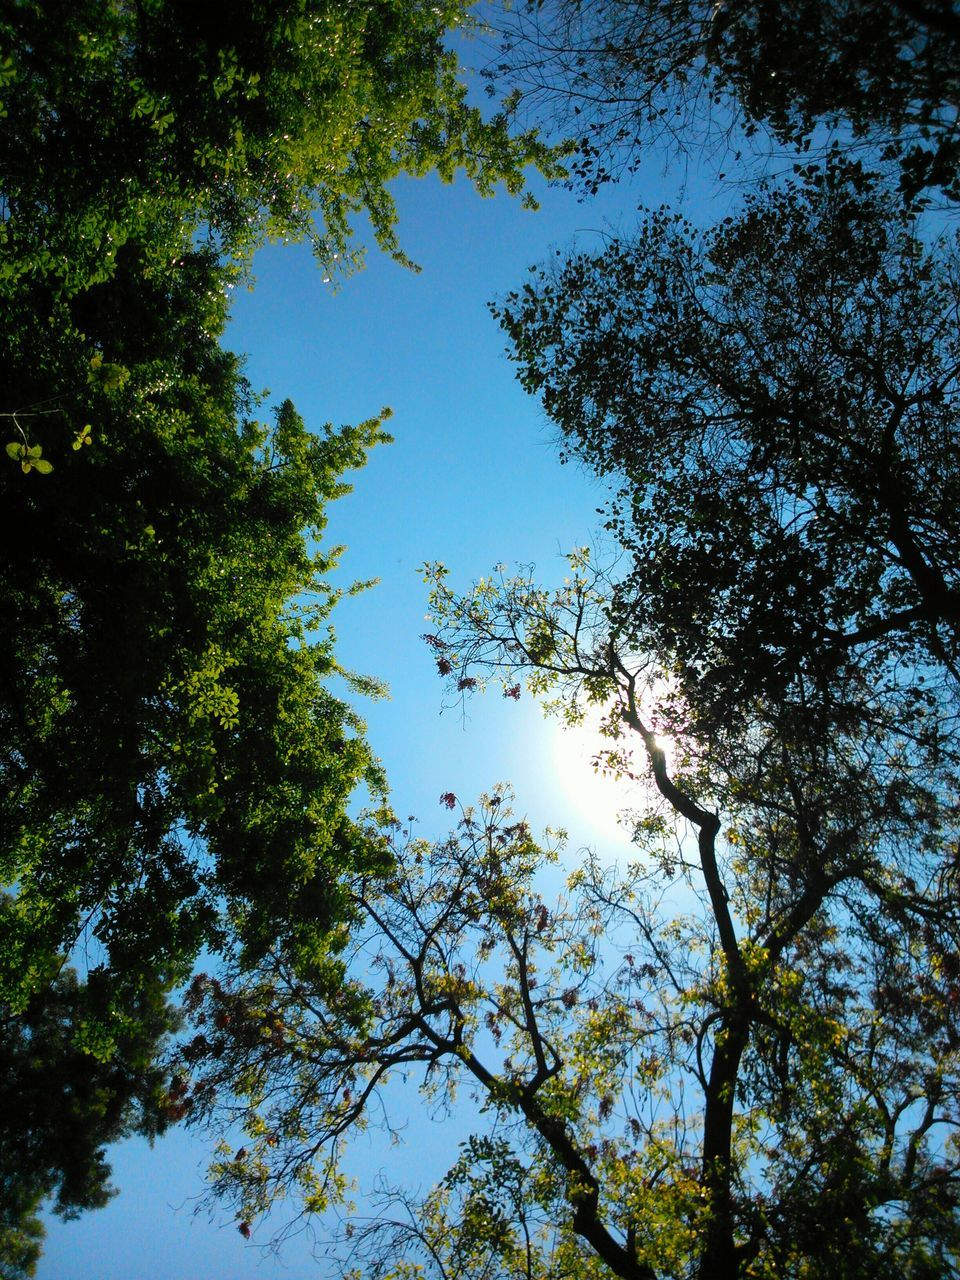 tree, nature, blue sky, forest, growth, low angle view, sunshine, hope, beauty in nature, height, clear sky, branch, day, no people, high, outdoors, sky